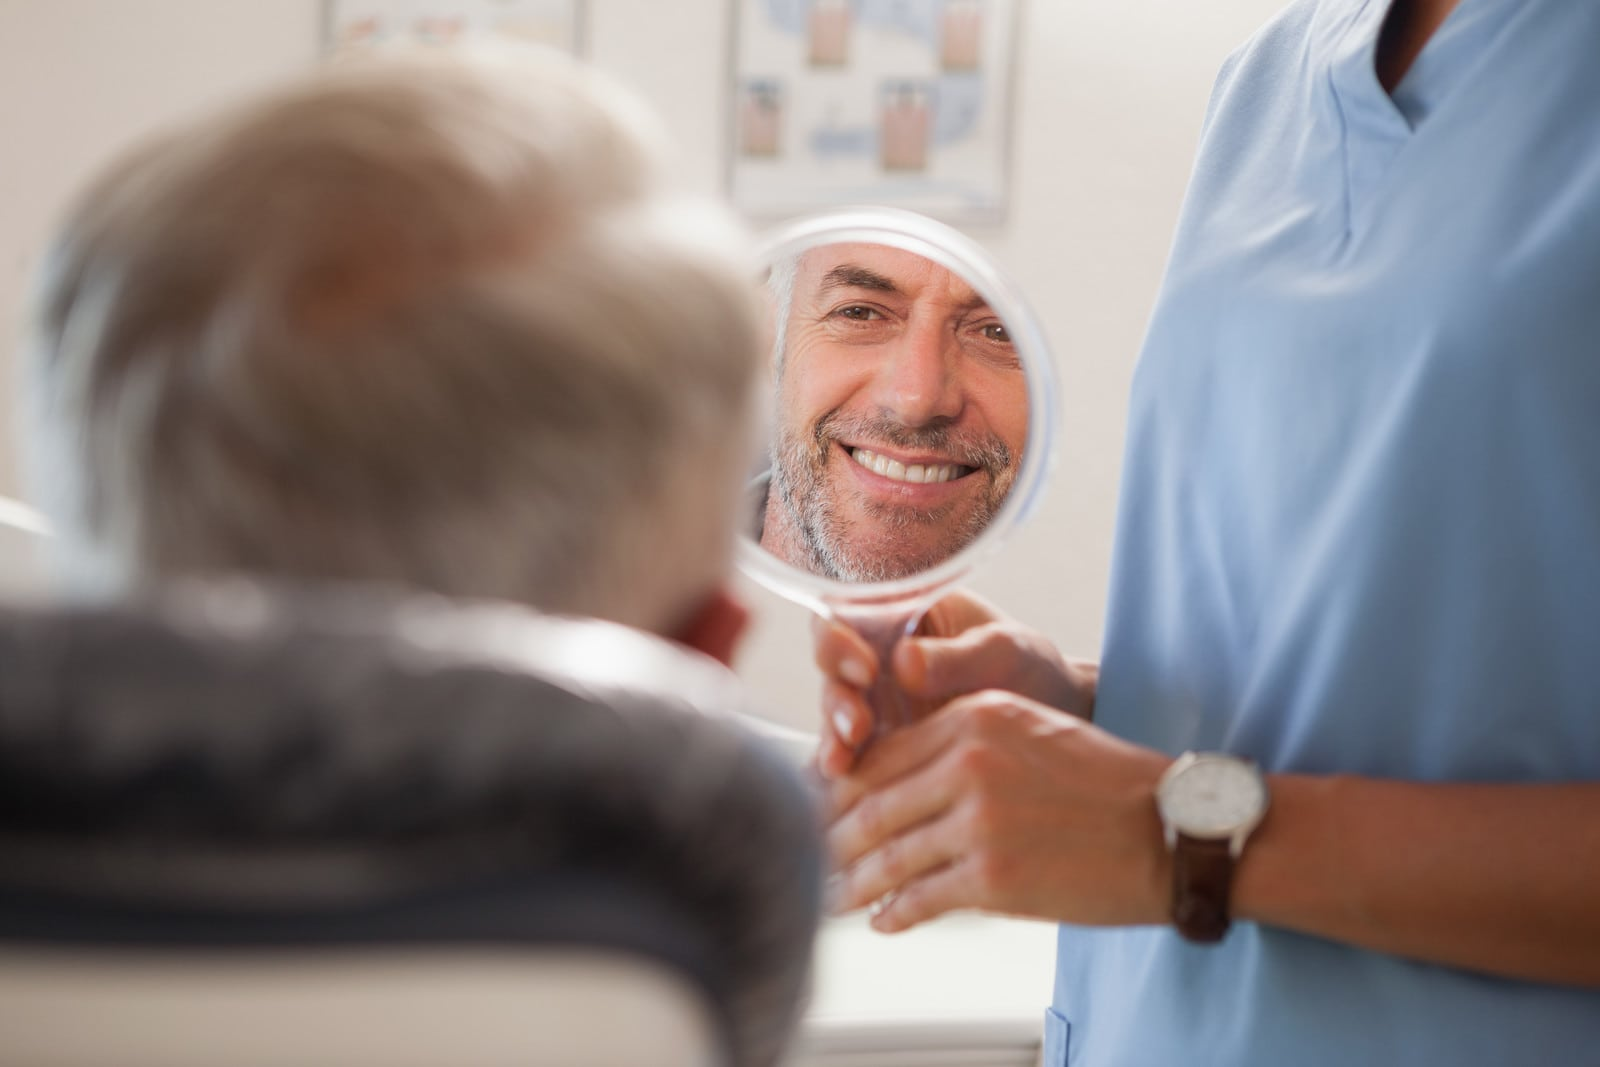 treatment options for missing some teeth